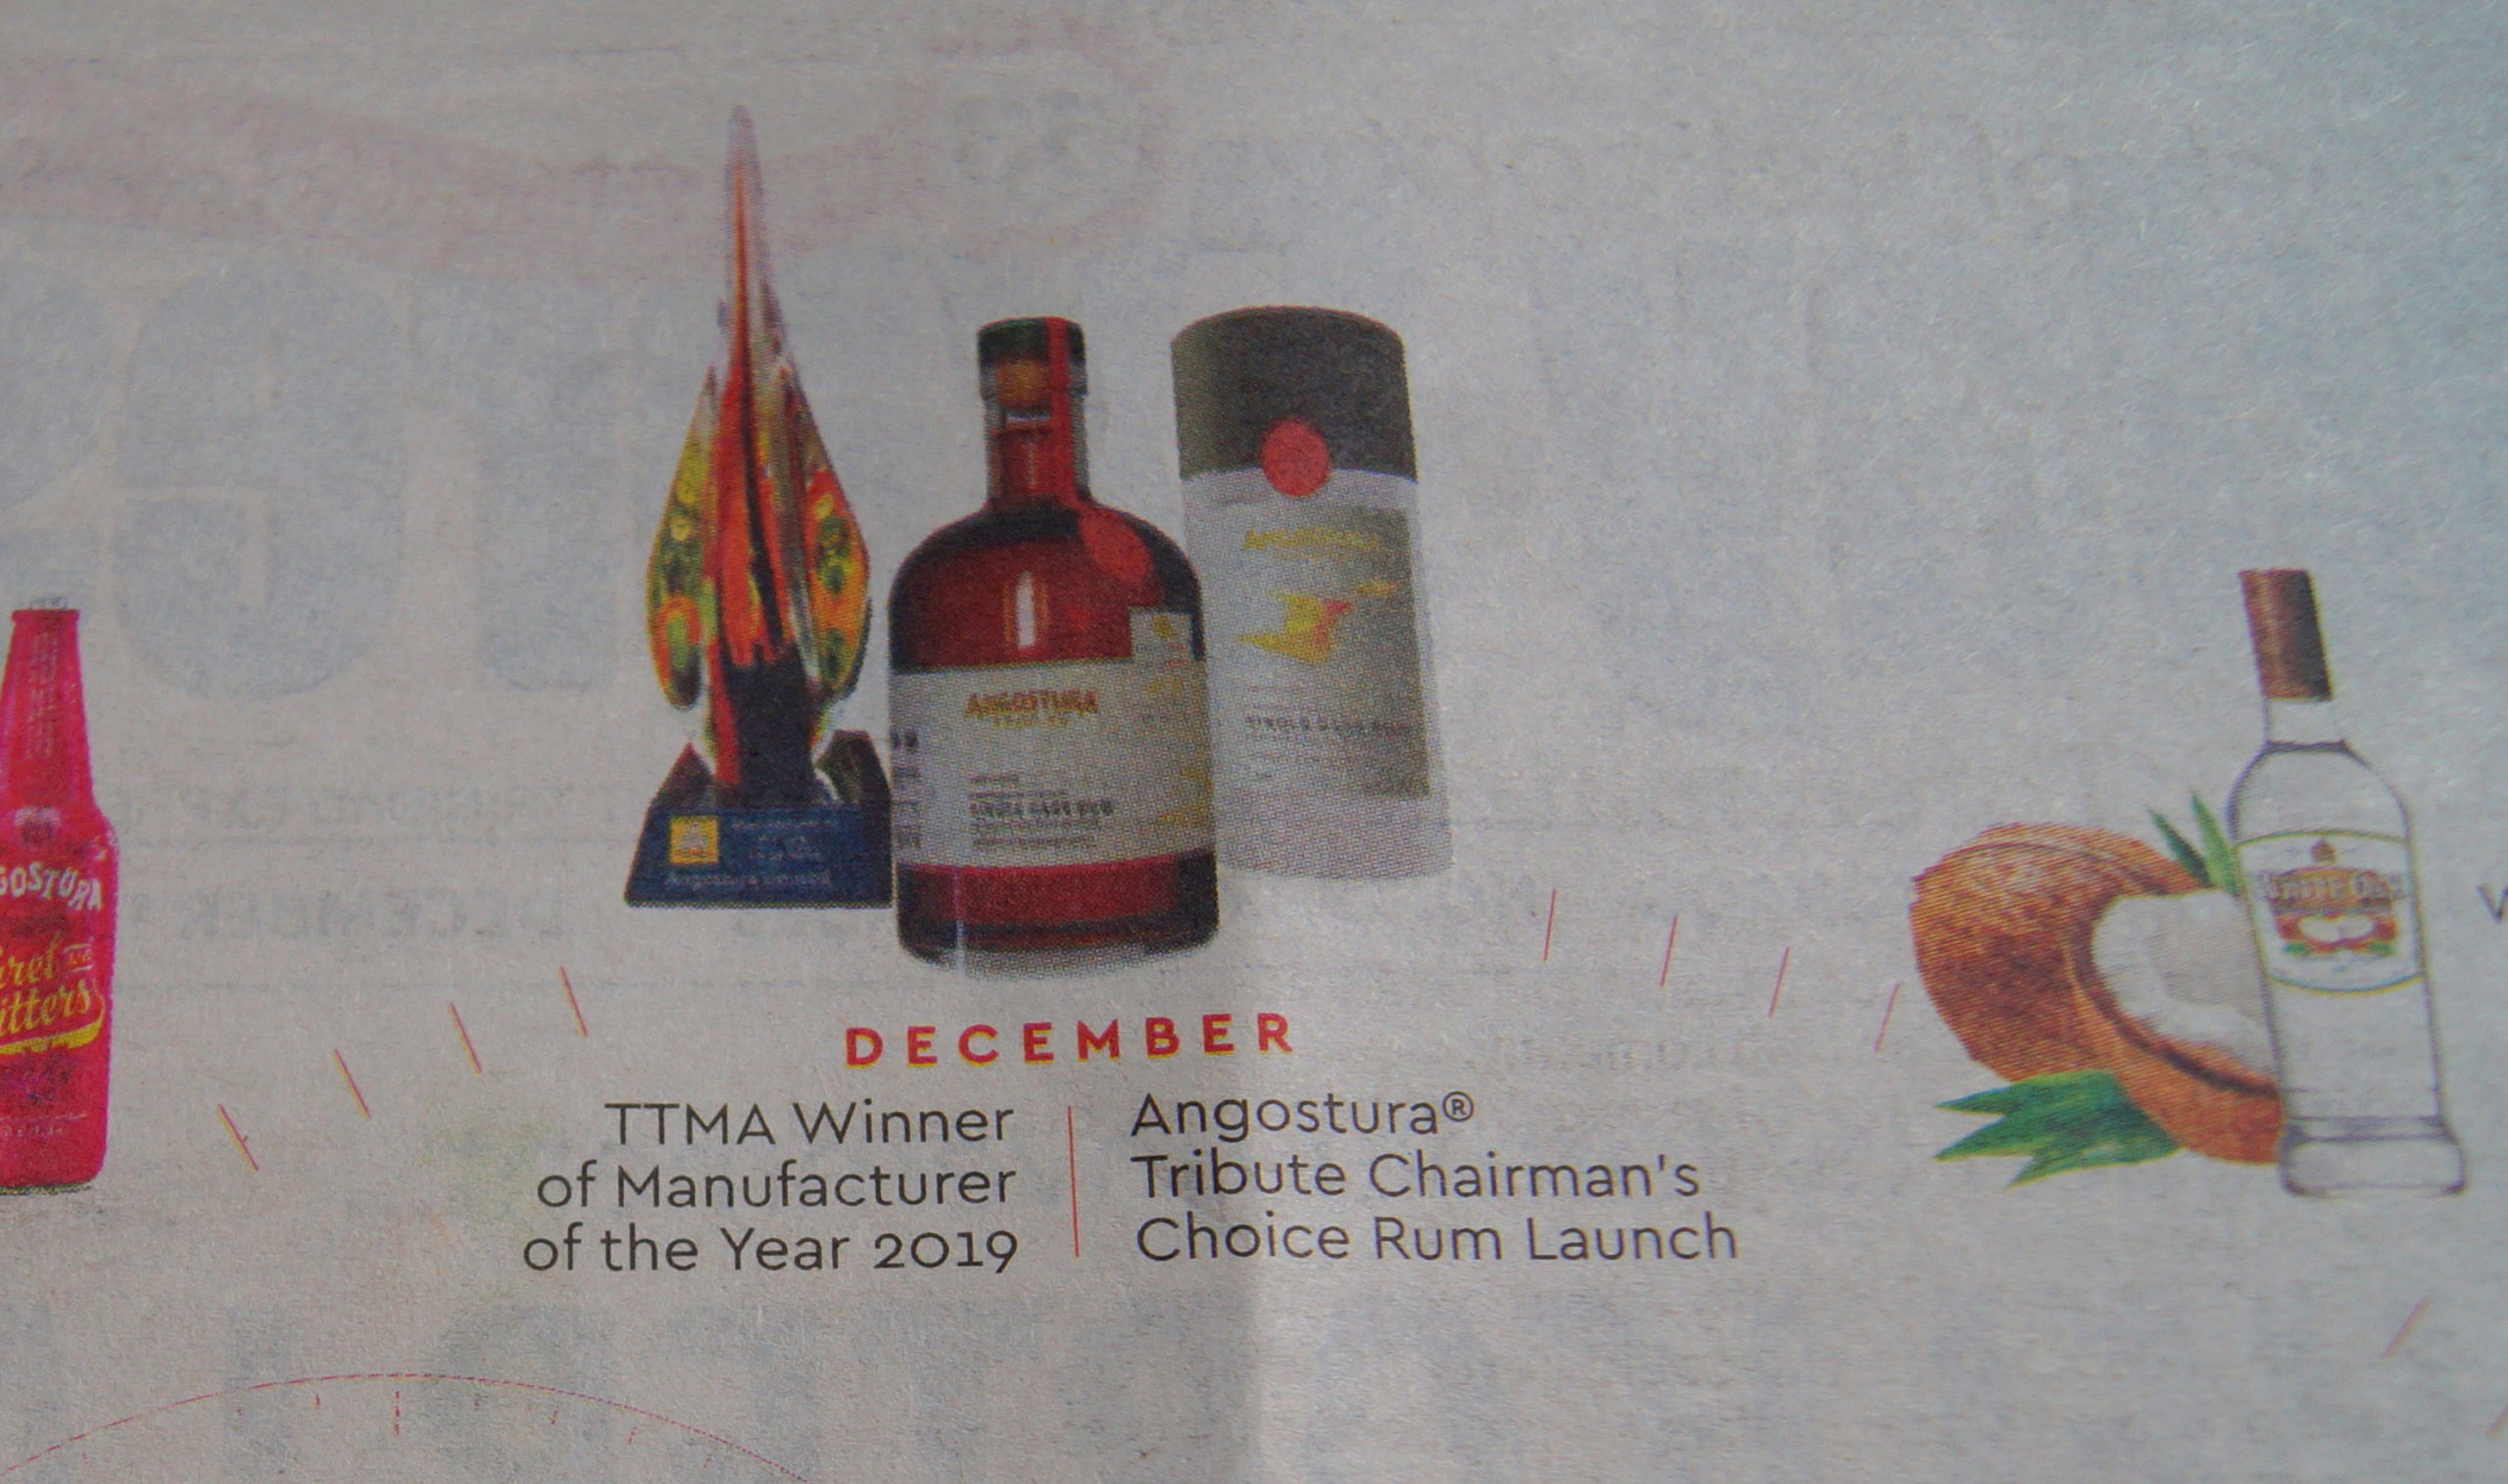 Angostura Tribute Chairman's Choice Rum